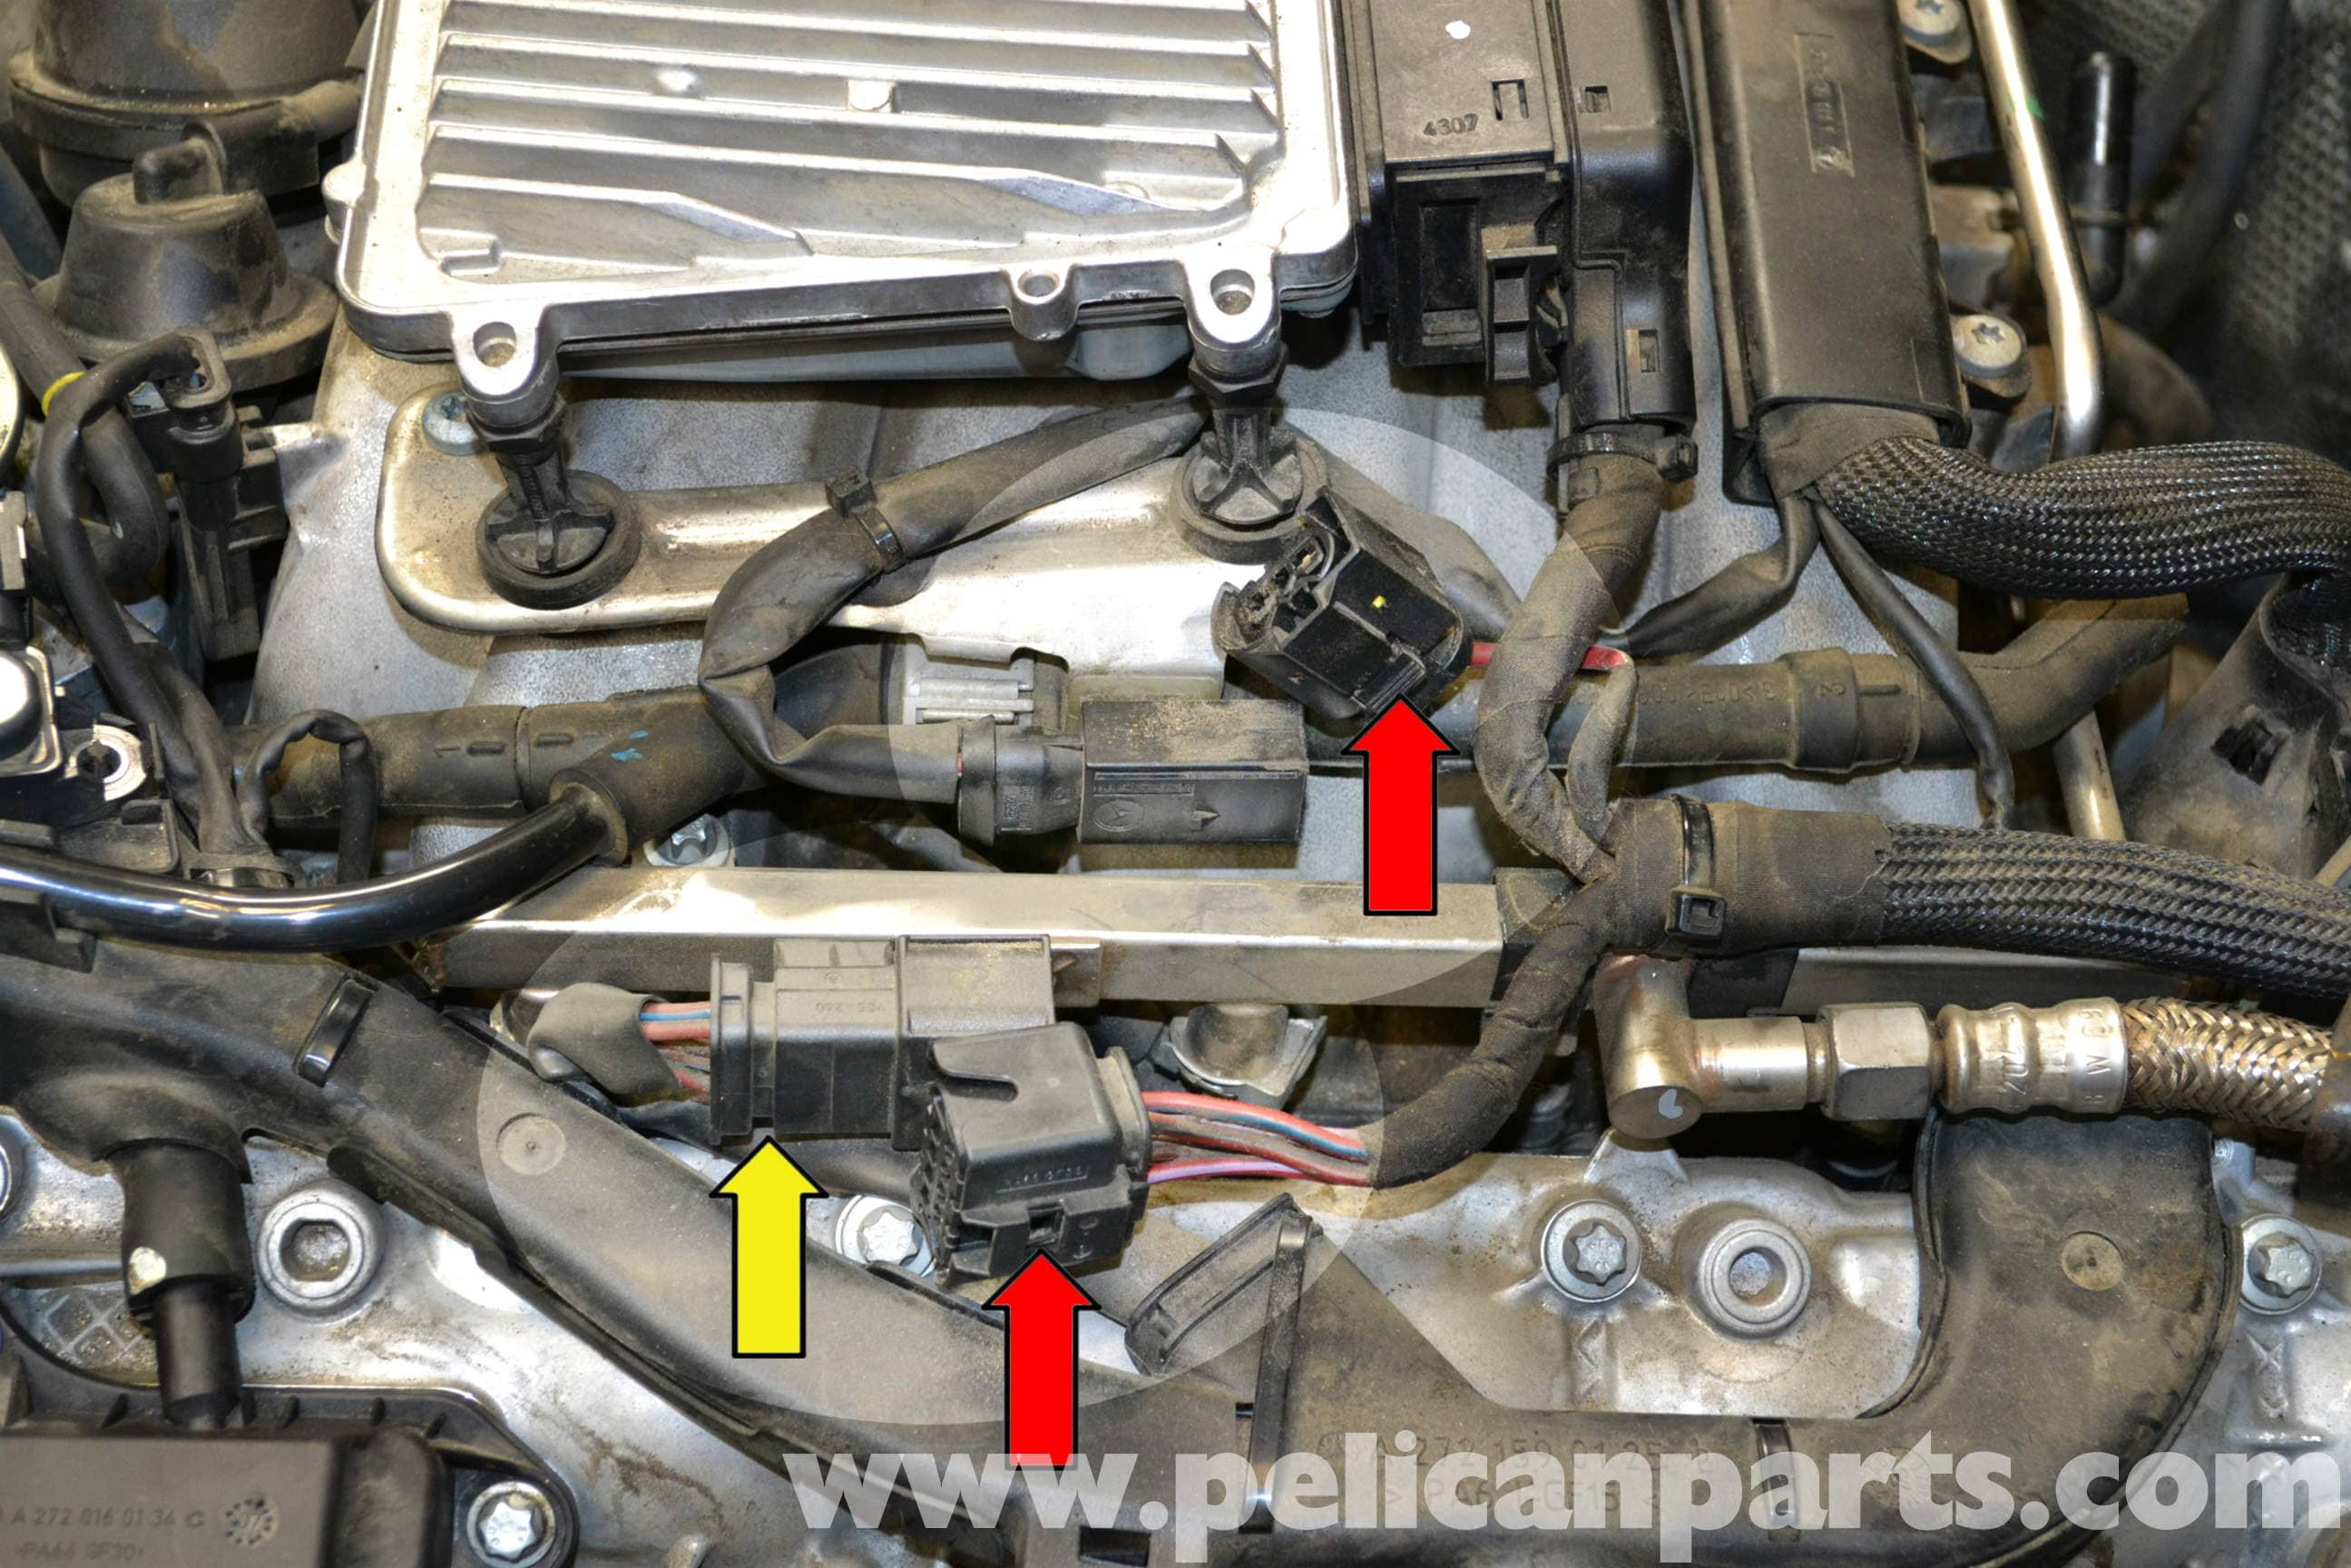 Mercedes-benz W204 Fuel Injector Replacement